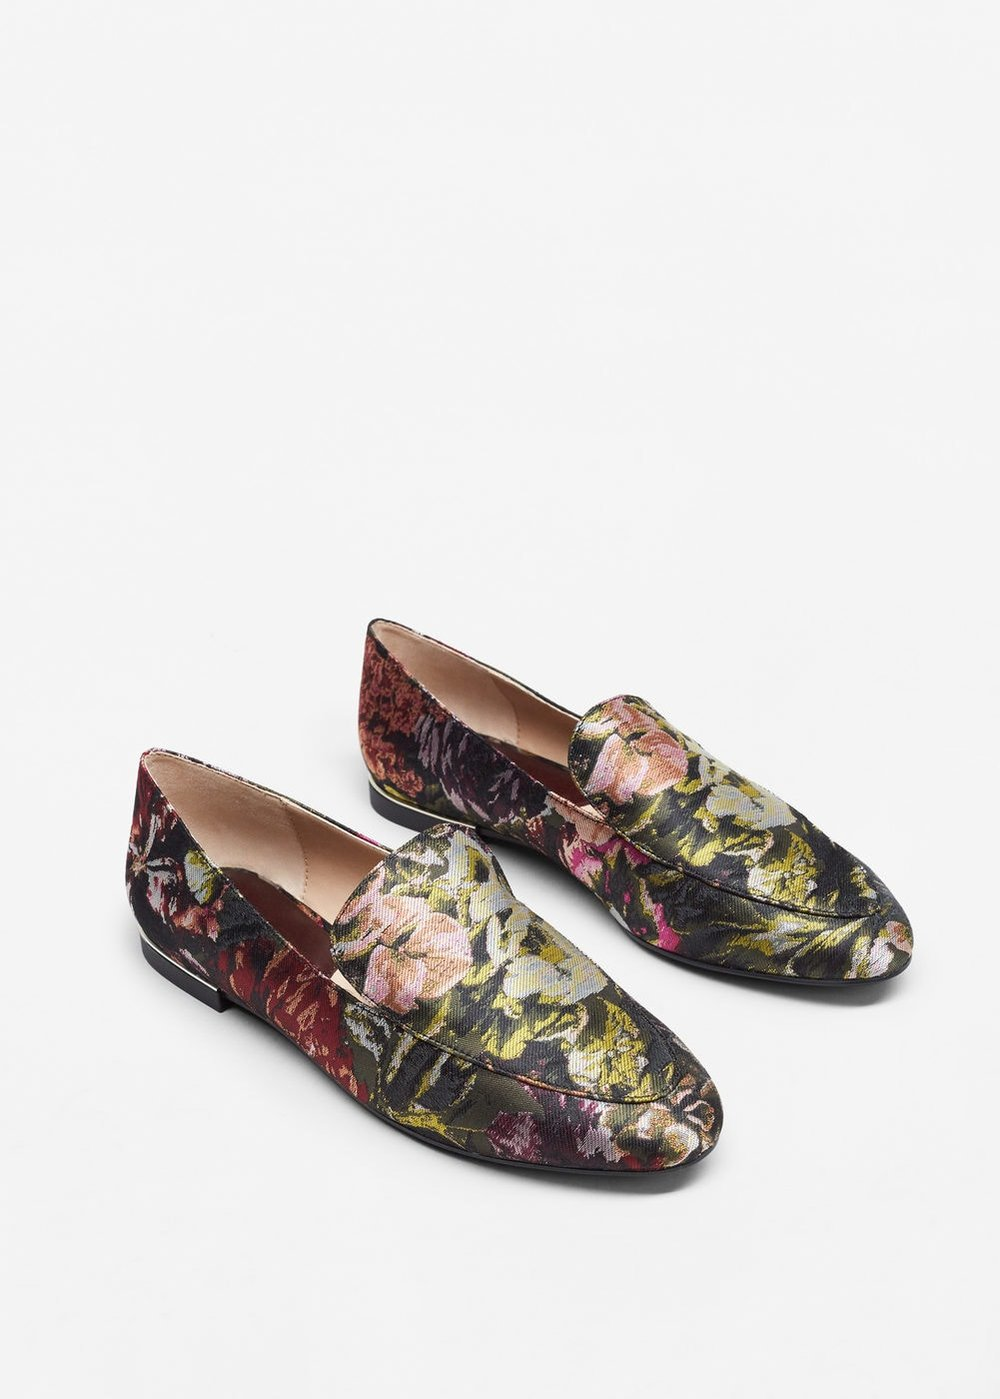 Shoes, £35.99, Mango